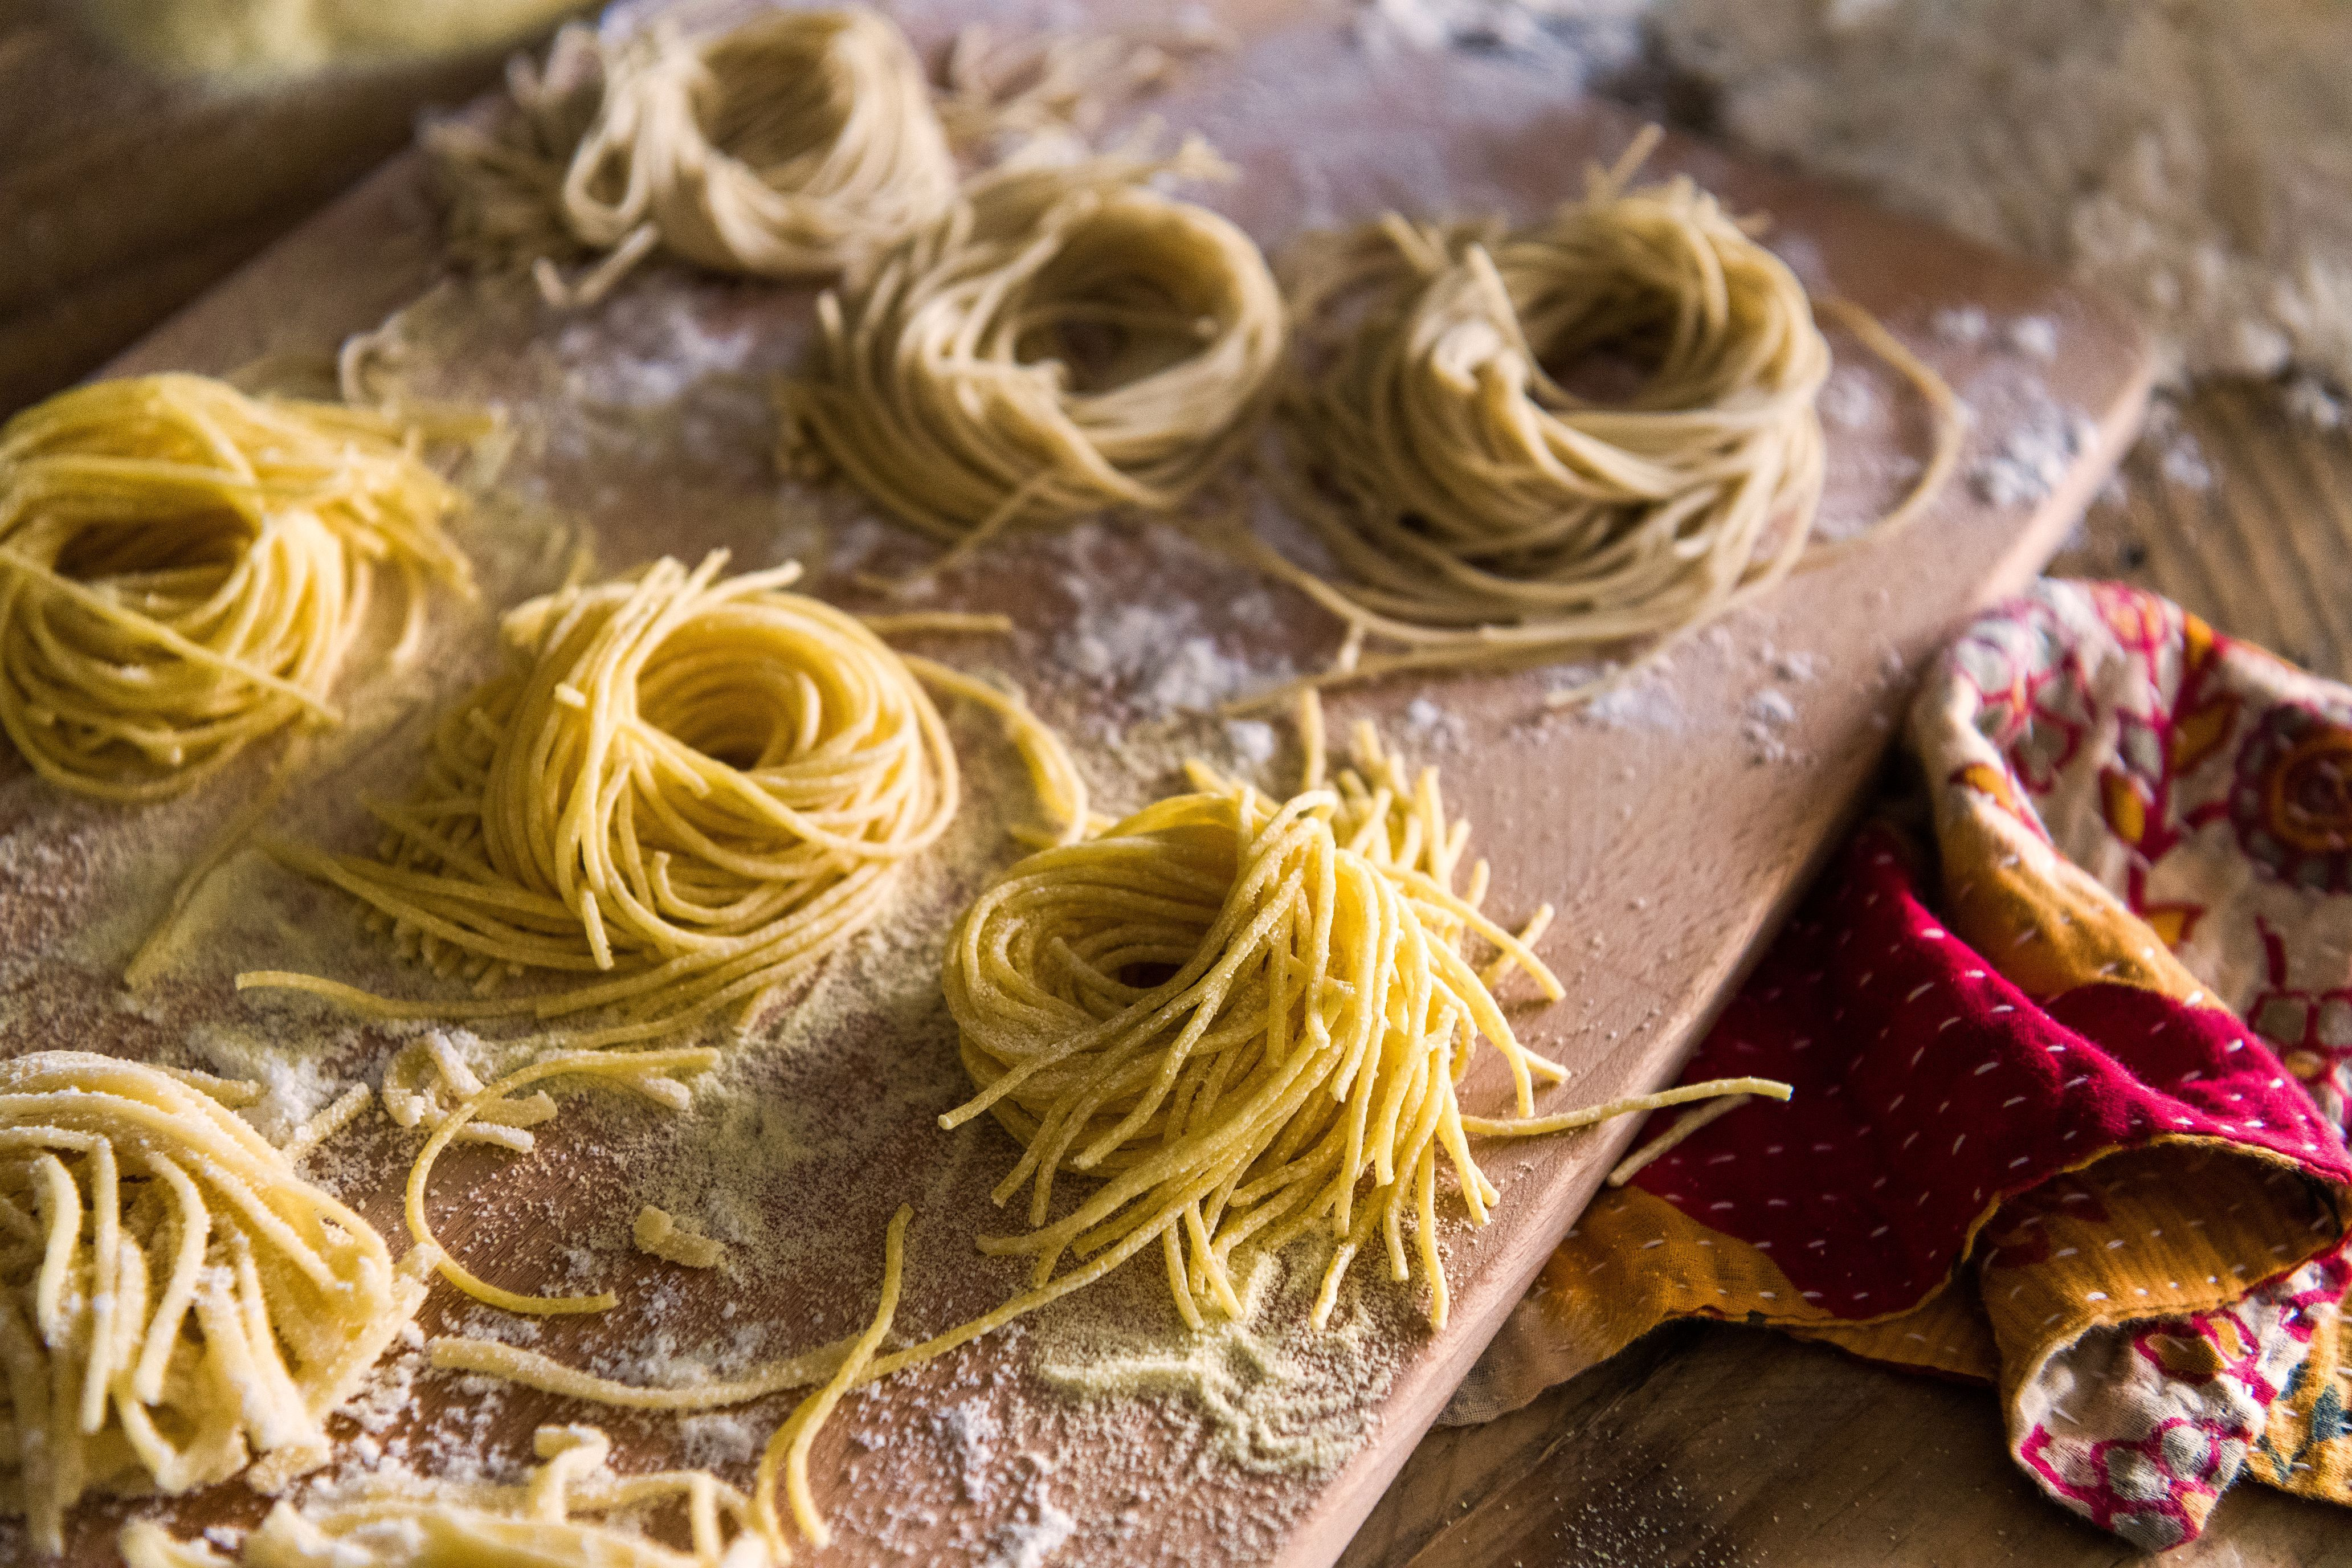 Homemade pasta using the philips pasta maker giveaway